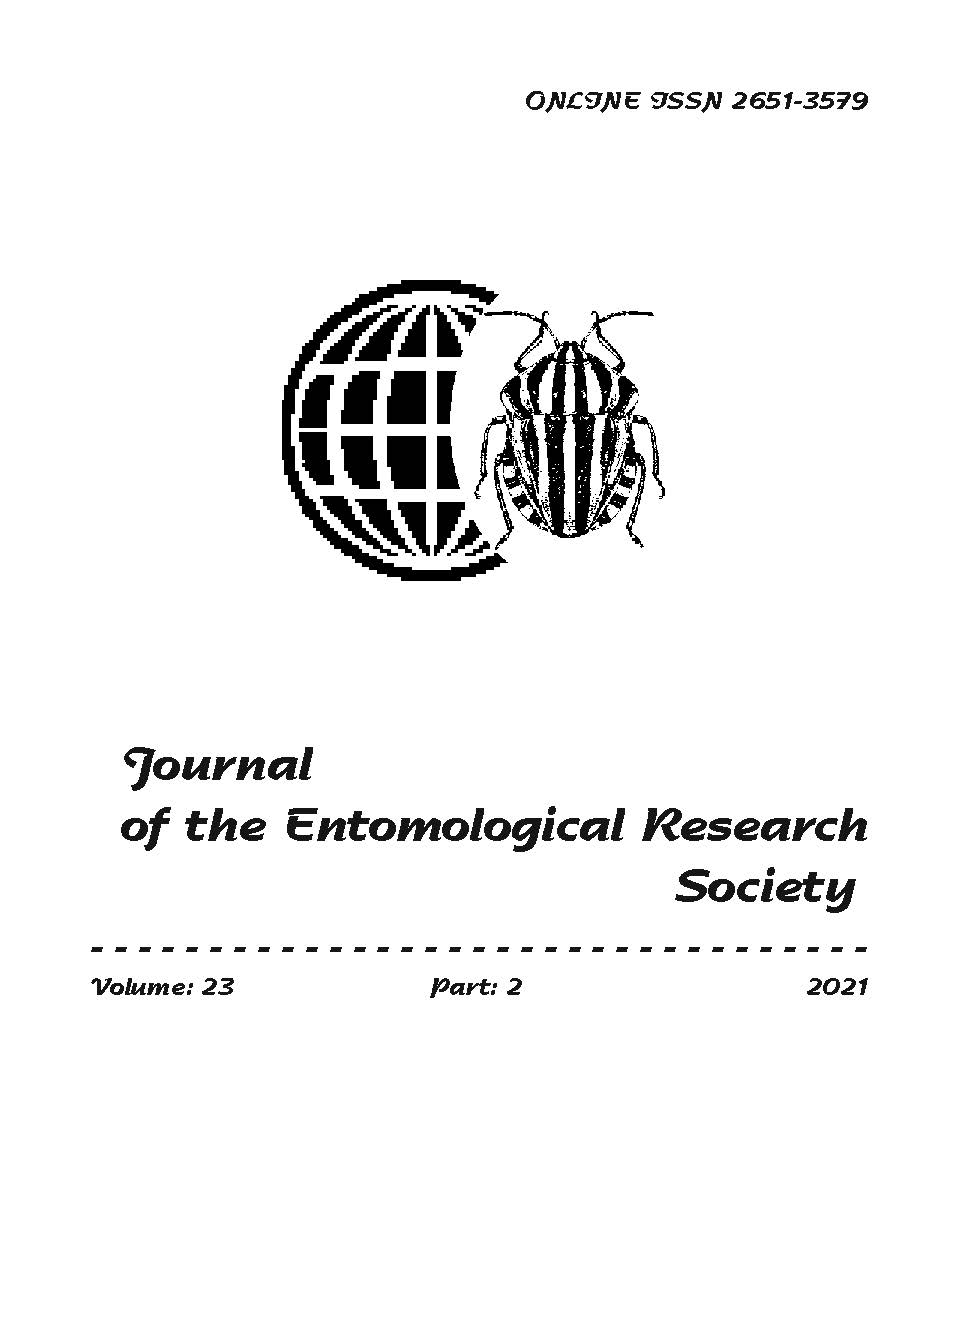 View Vol. 23 No. 2 (2021): Journal of the Entomological Research Society